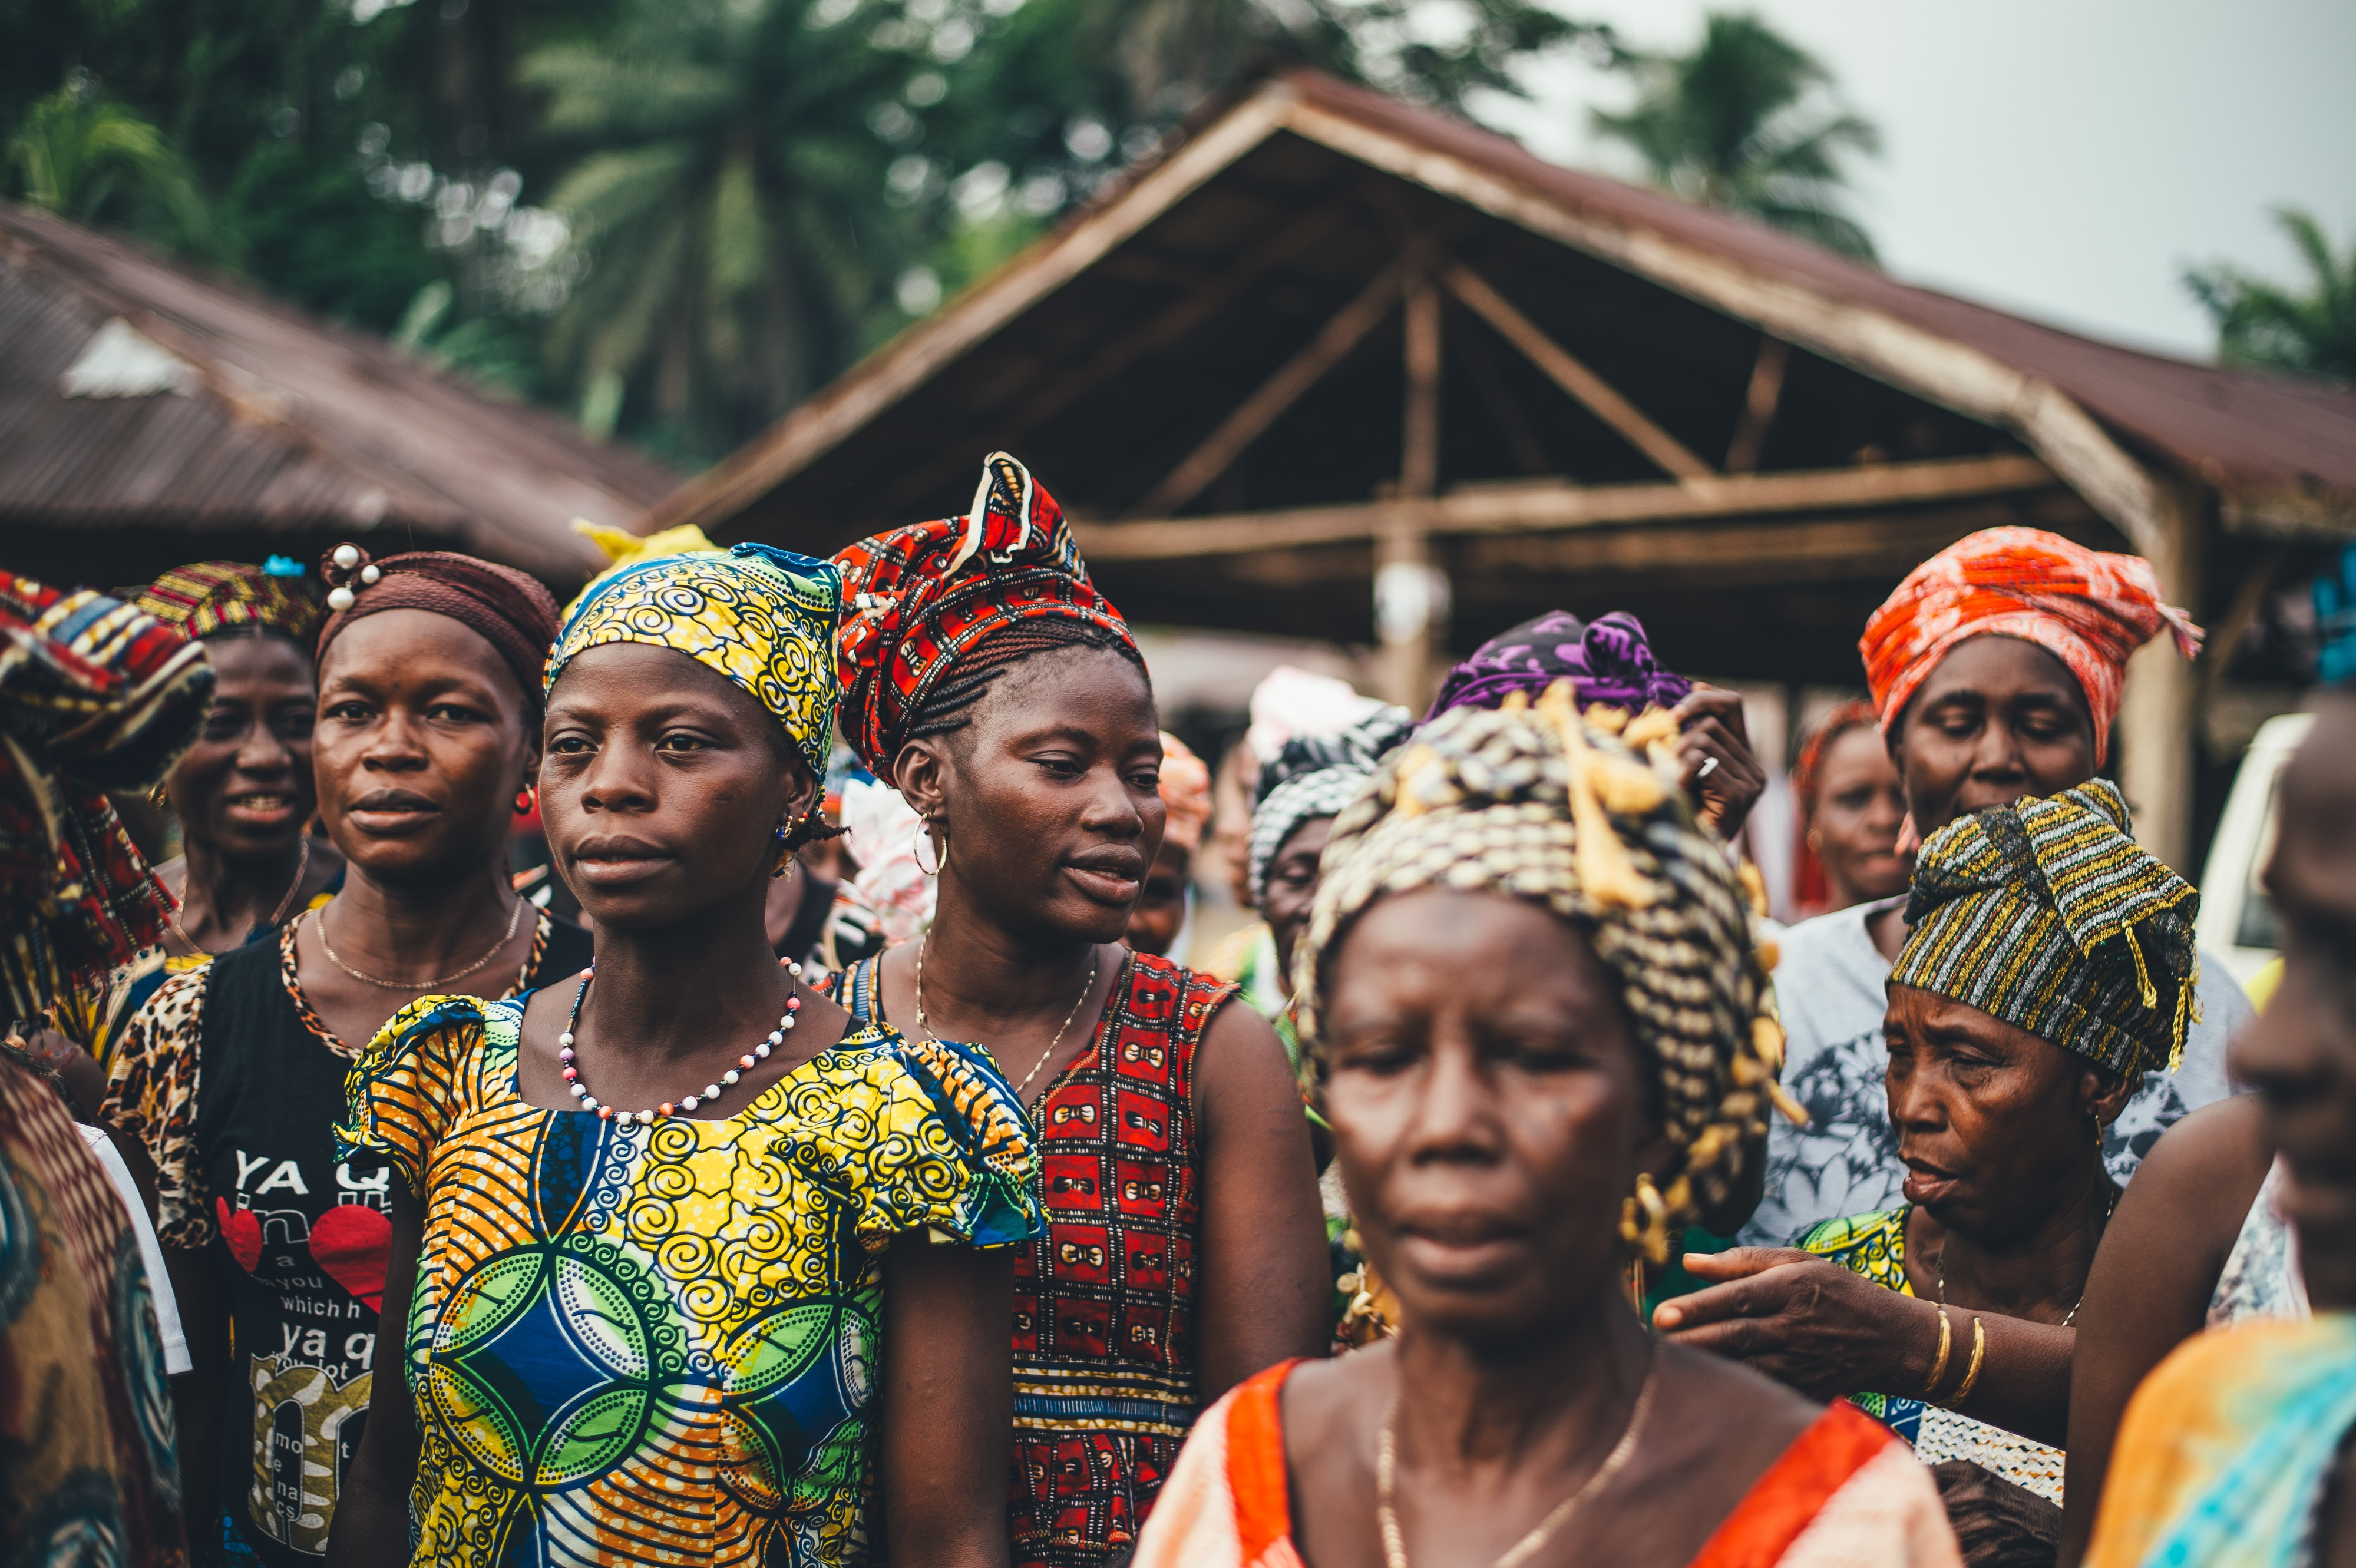 FORWARD Welcomes the New EU Resolution on FGM